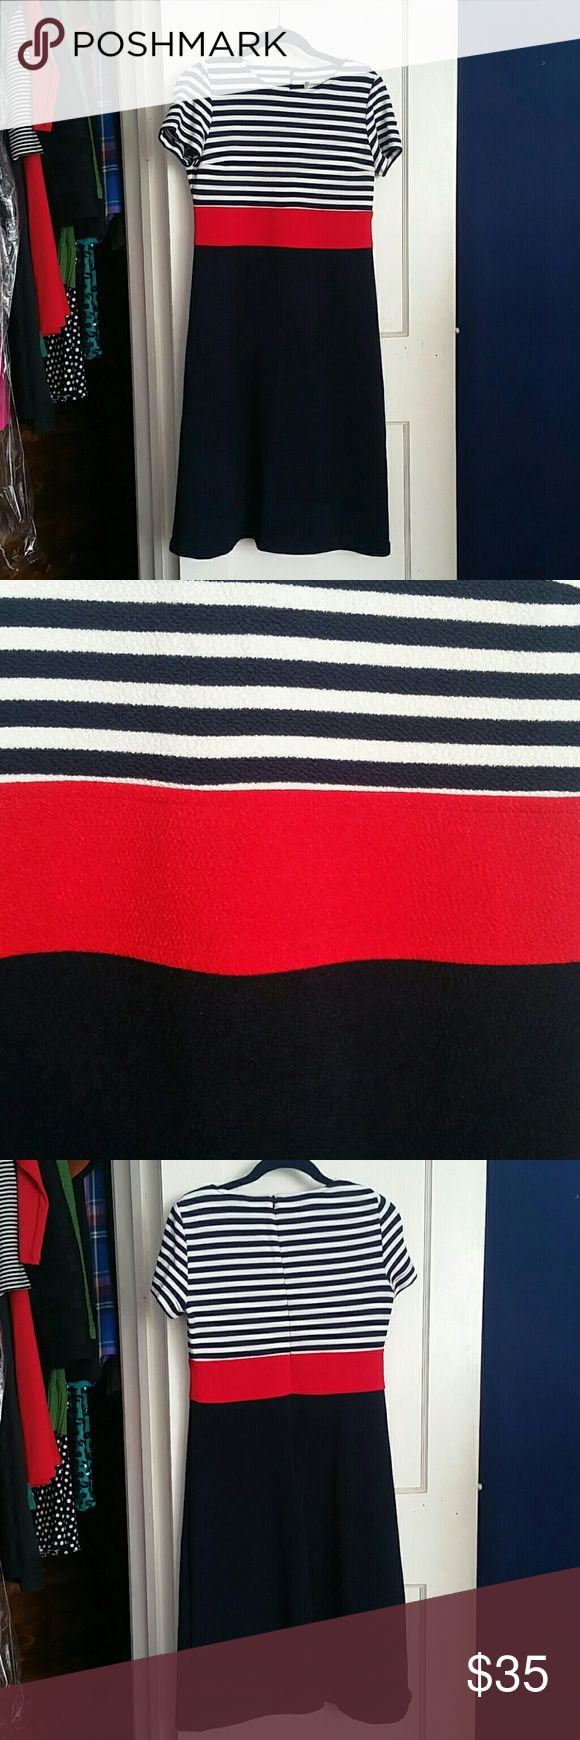 Coldwater Creek Nautical Stripe Dress Short sleeve A-line dress in red, white, and blue with nautical feel. Stripes to top bodice and slimming navy blue to bottom. Rayon/polyester/spandex blend. Overall length 40.75 inches. Bust 15 inches. Has some stretch. Coldwater Creek Dresses